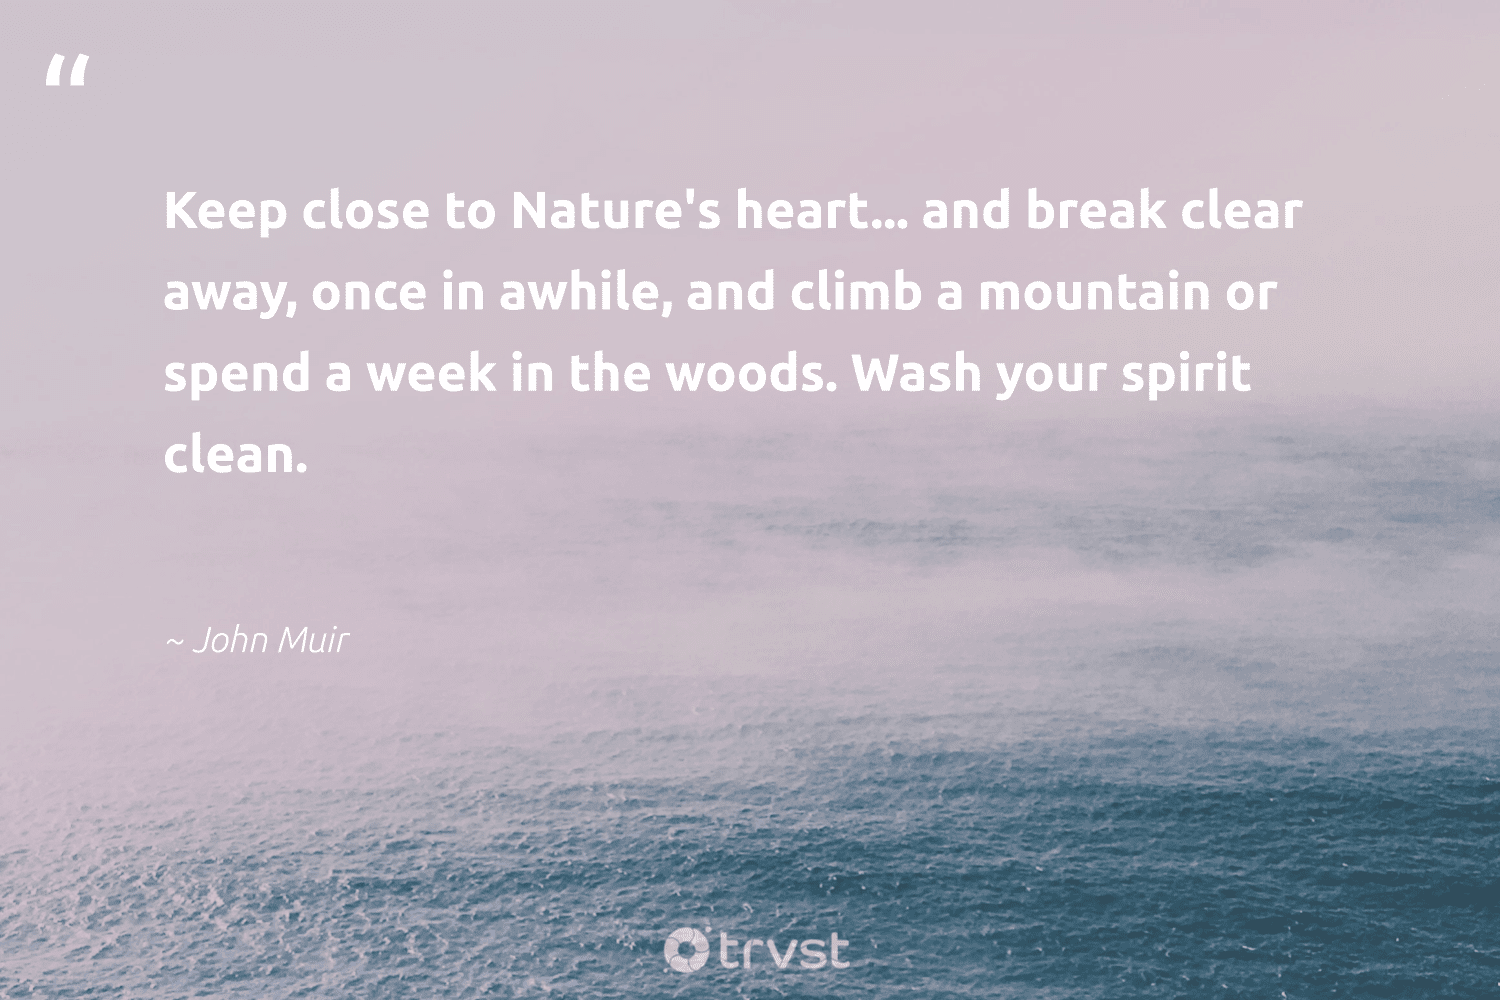 """""""Keep close to Nature's heart... and break clear away, once in awhile, and climb a mountain or spend a week in the woods. Wash your spirit clean.""""  - John Muir #trvst #quotes #mountain #wildernessnation #socialchange #ecofriendly #dogood #wildlifeplanet #dosomething #gogreen #impact #sustainability"""